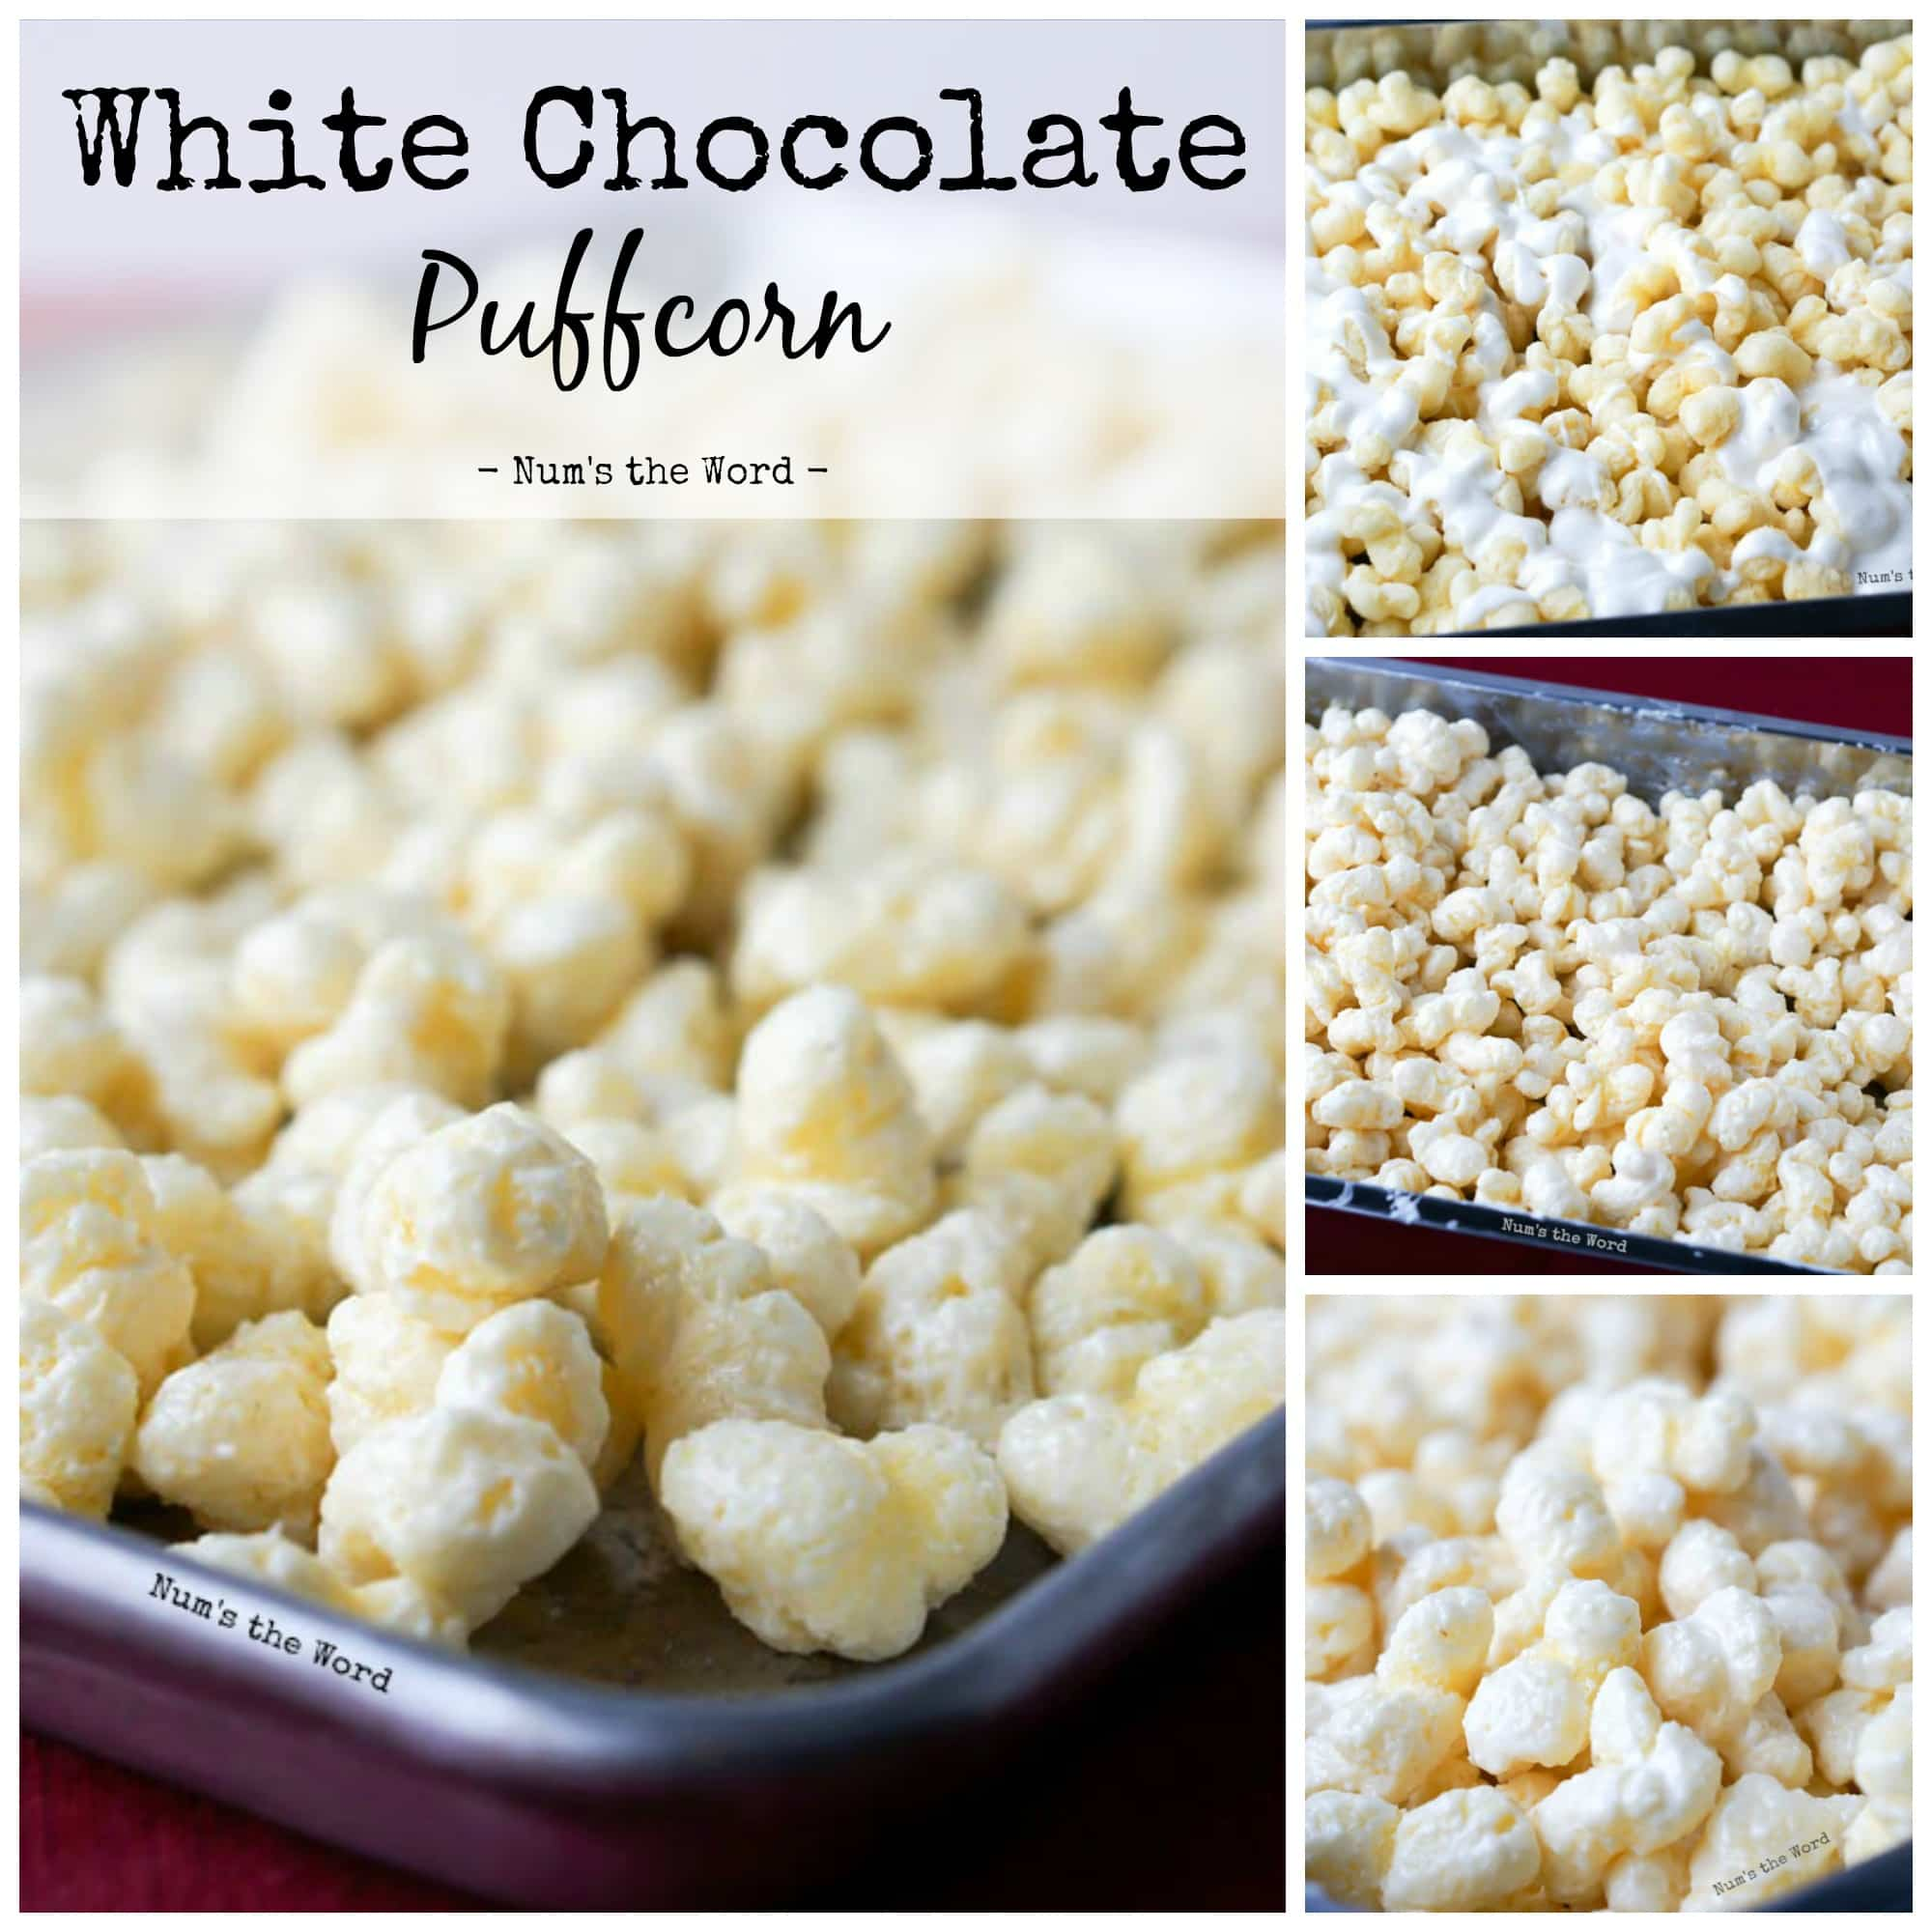 White Chocolate Christmas Crack Recipe.White Chocolate Puffcorn Num S The Word